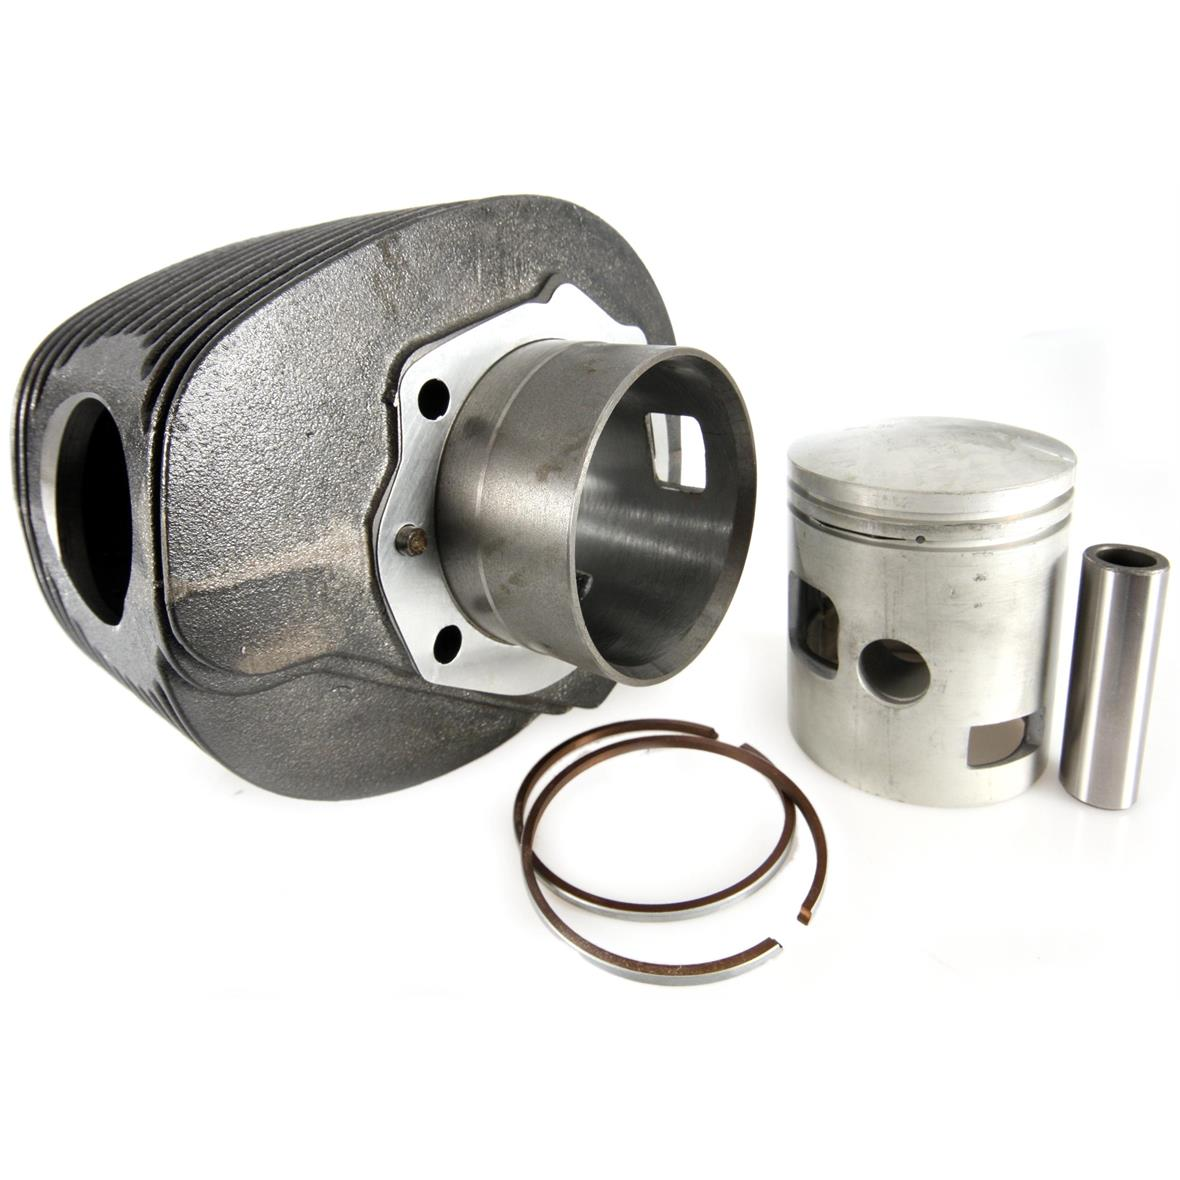 Product Image for 'Cylinder Kit SIP 200 ccTitle'